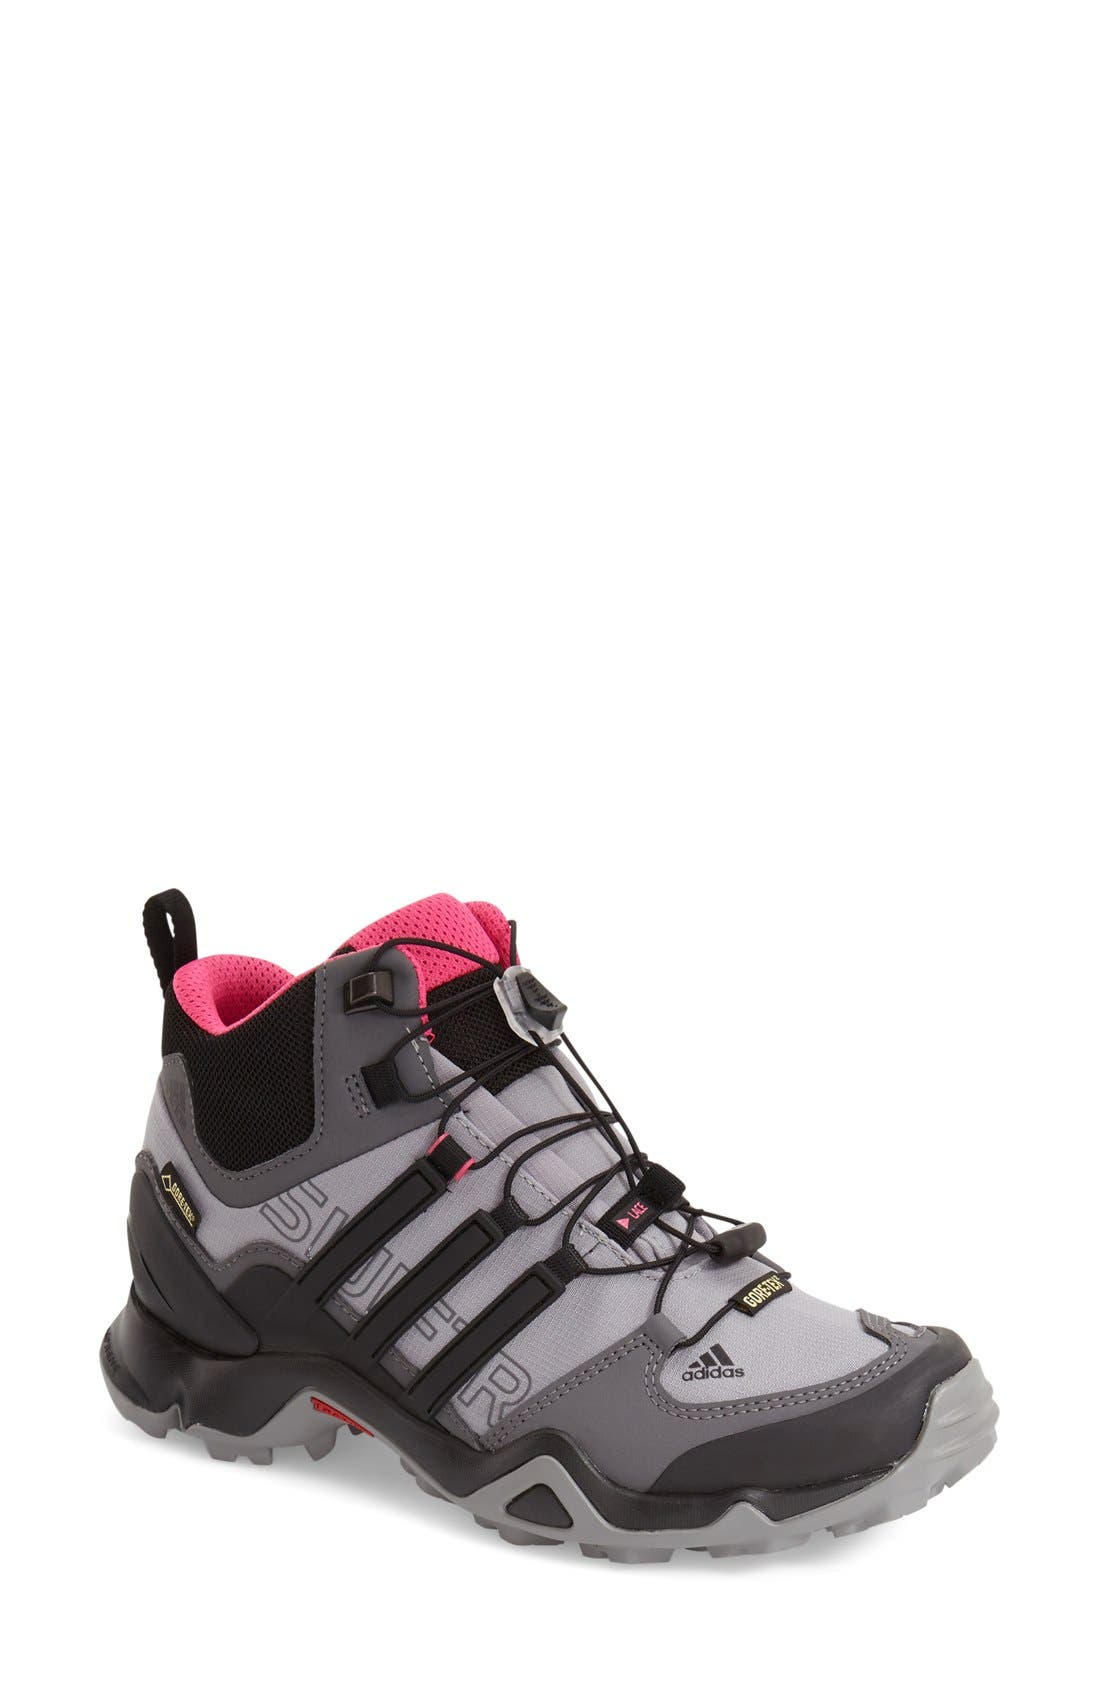 Adidas Terrex Swift R2 Mid GTX Boot